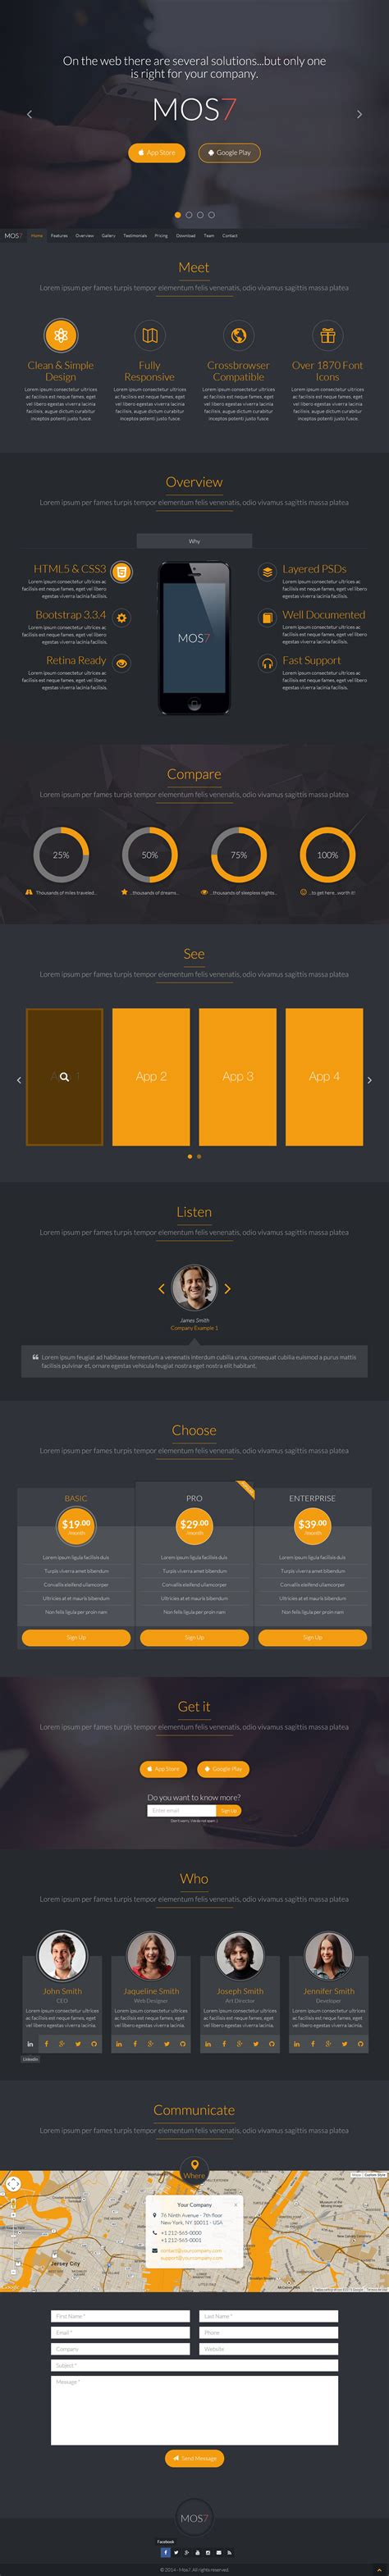 responsive layout bootstrap 3 tutorial mos7 responsive bootstrap 3 app landing page by